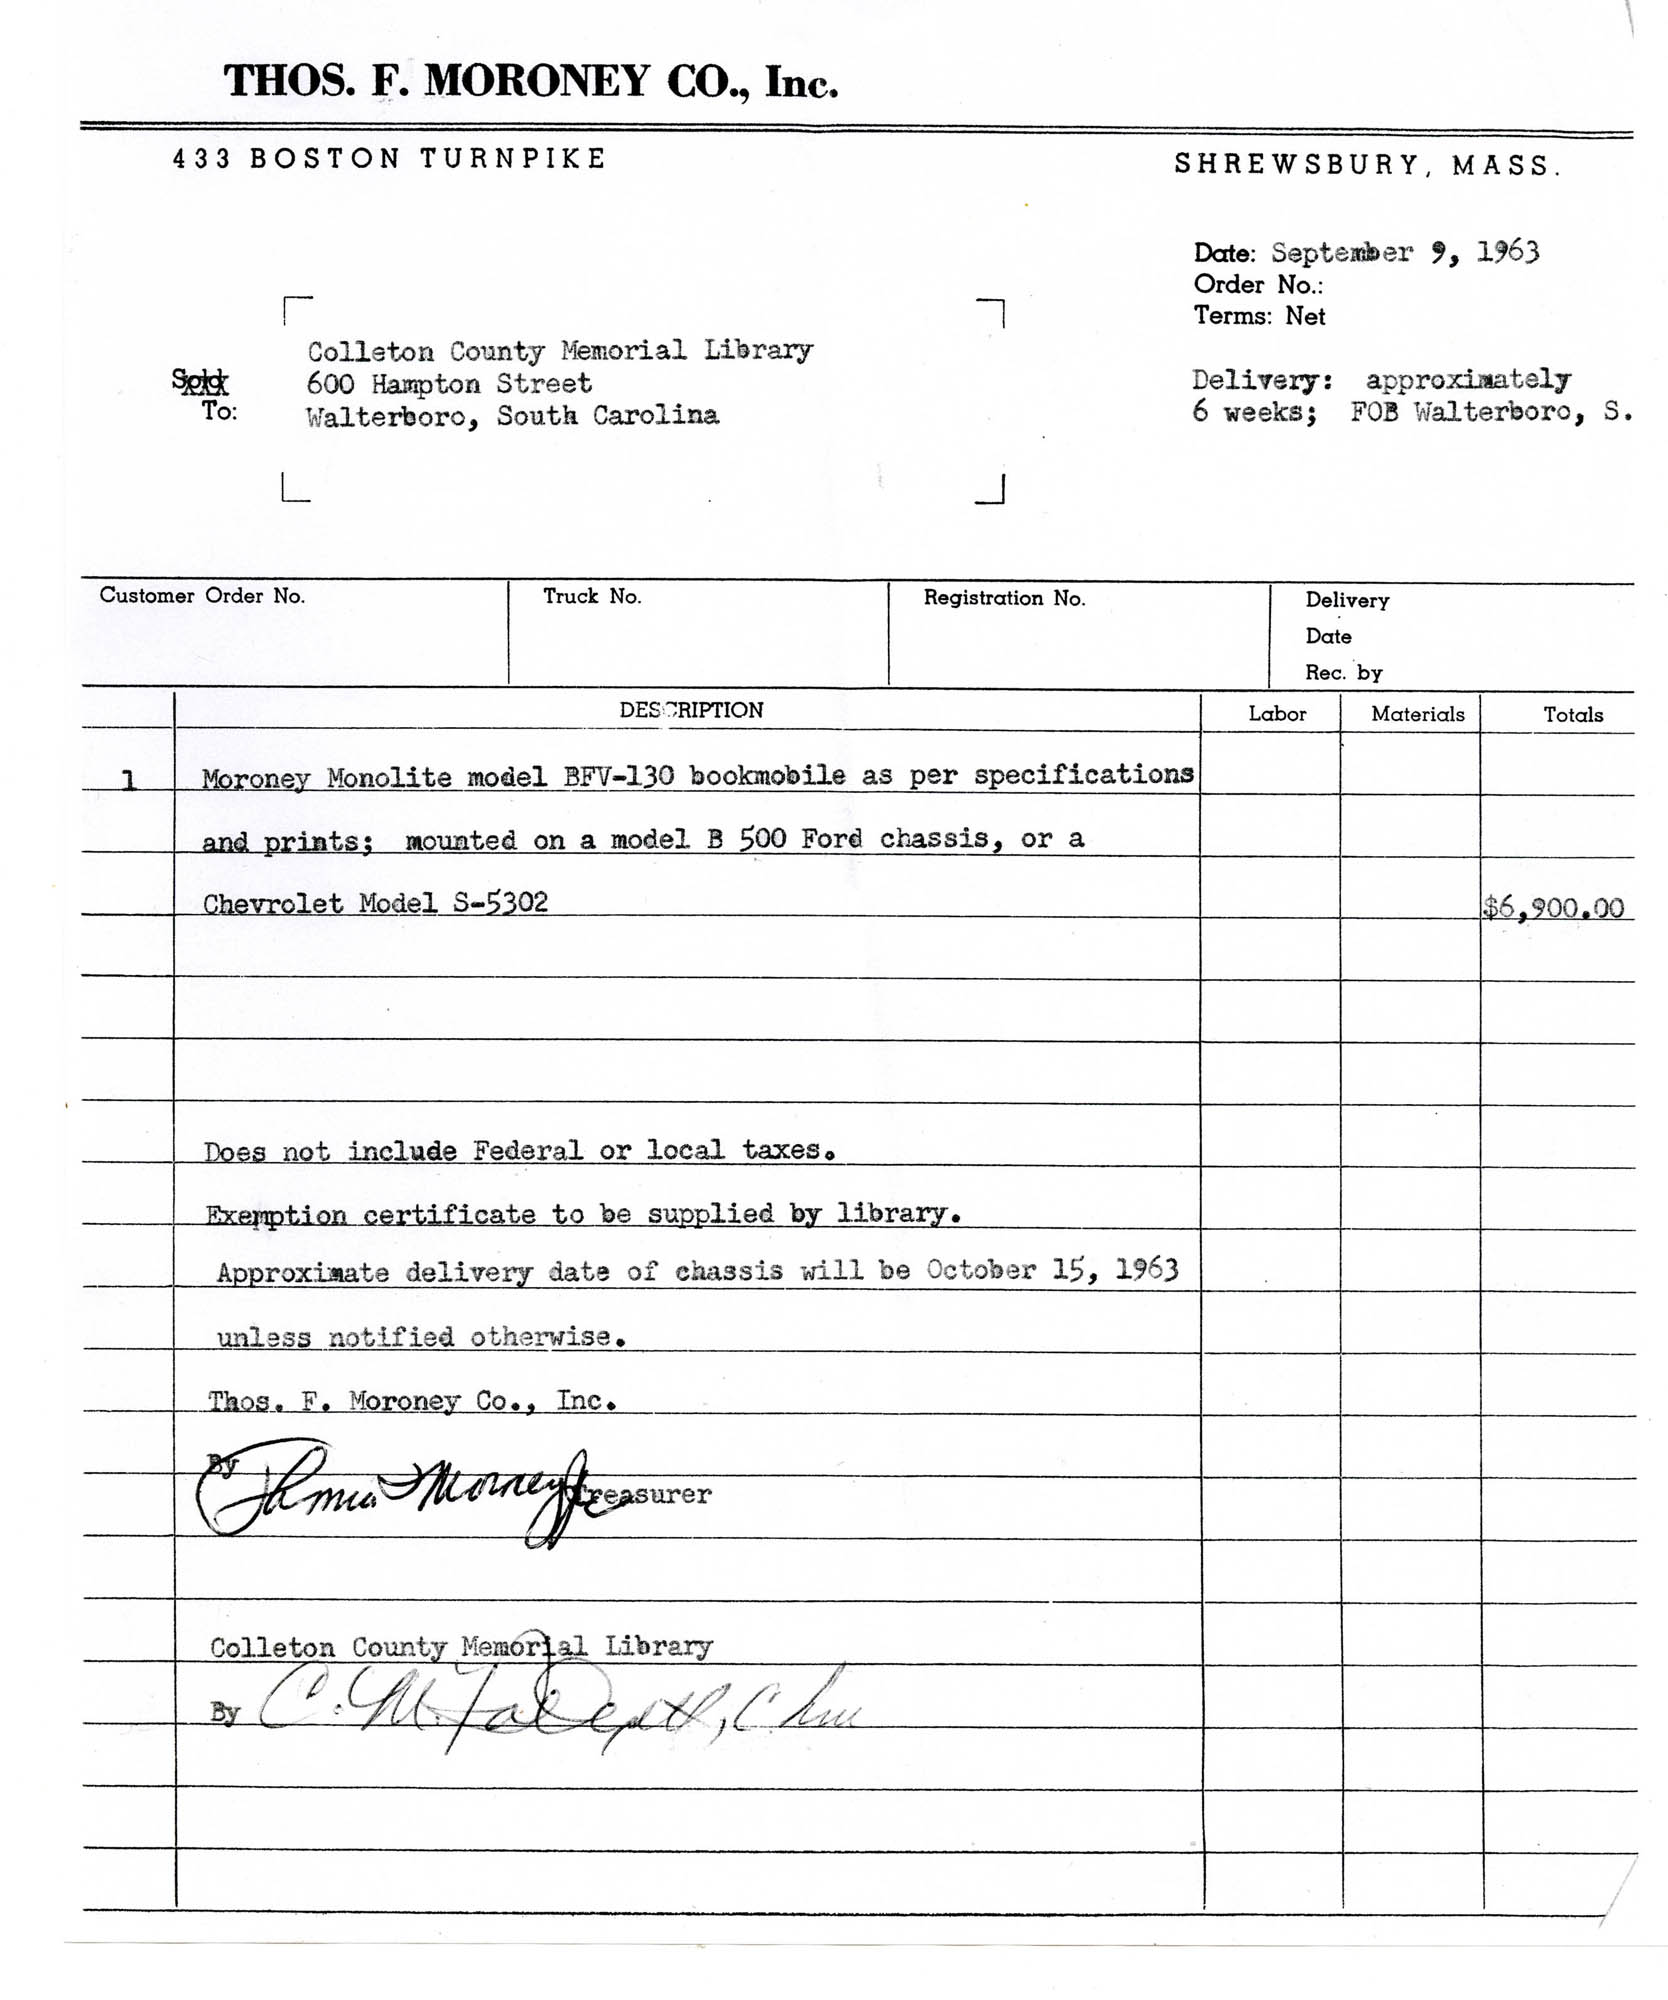 Purchase Order For 1963 Bookmobile